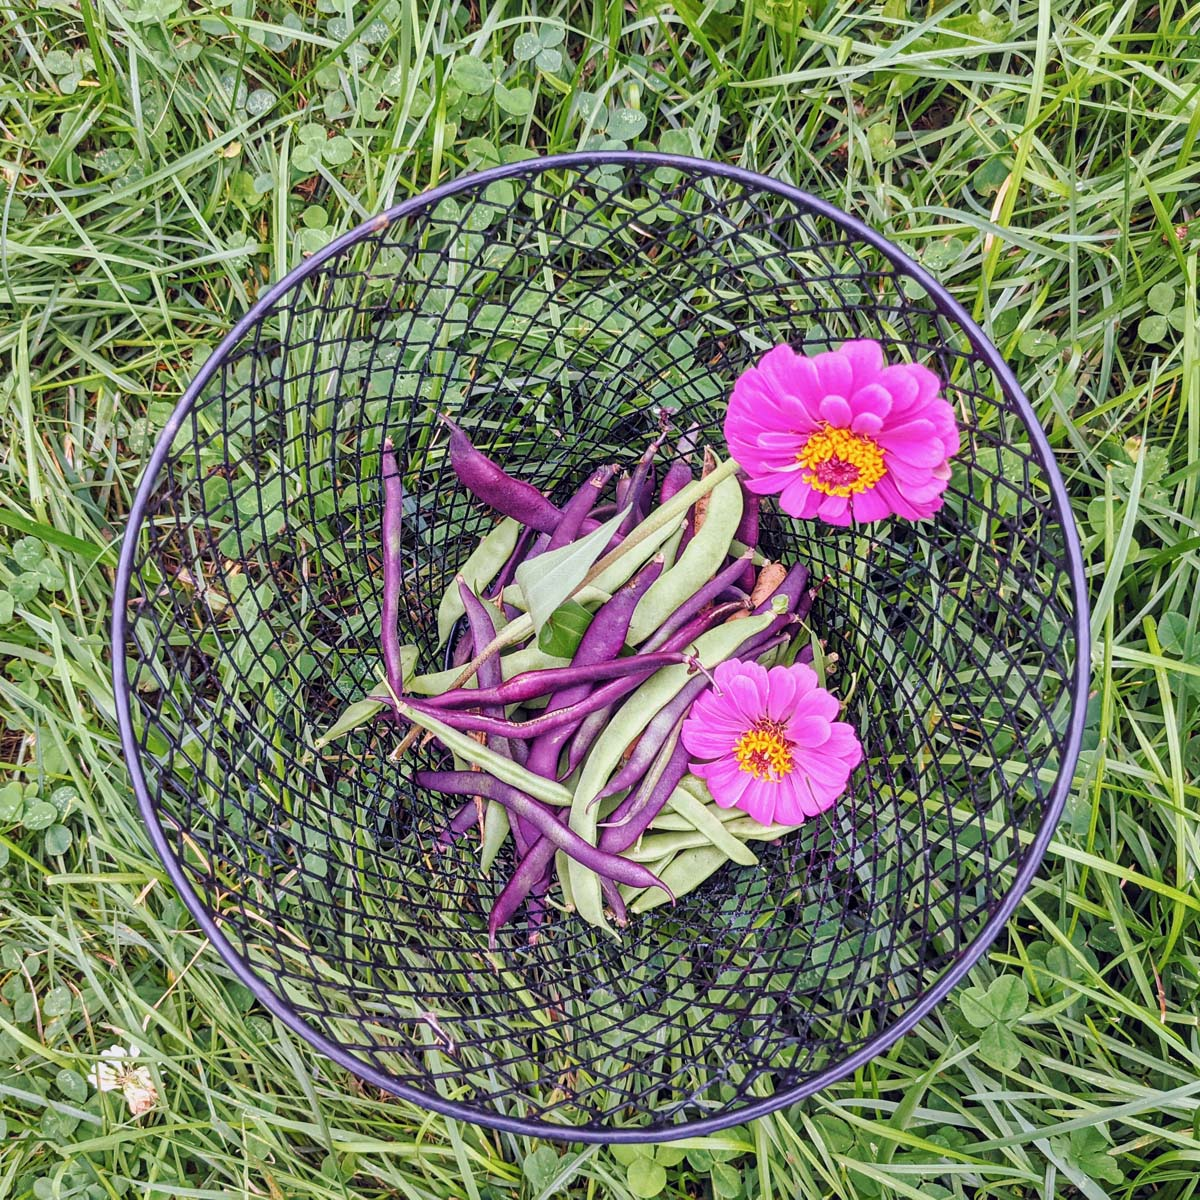 Growing Zinnias in Vegetable Garden is a lovely and useful companion planting - basket of beans and purple zinnia flowers